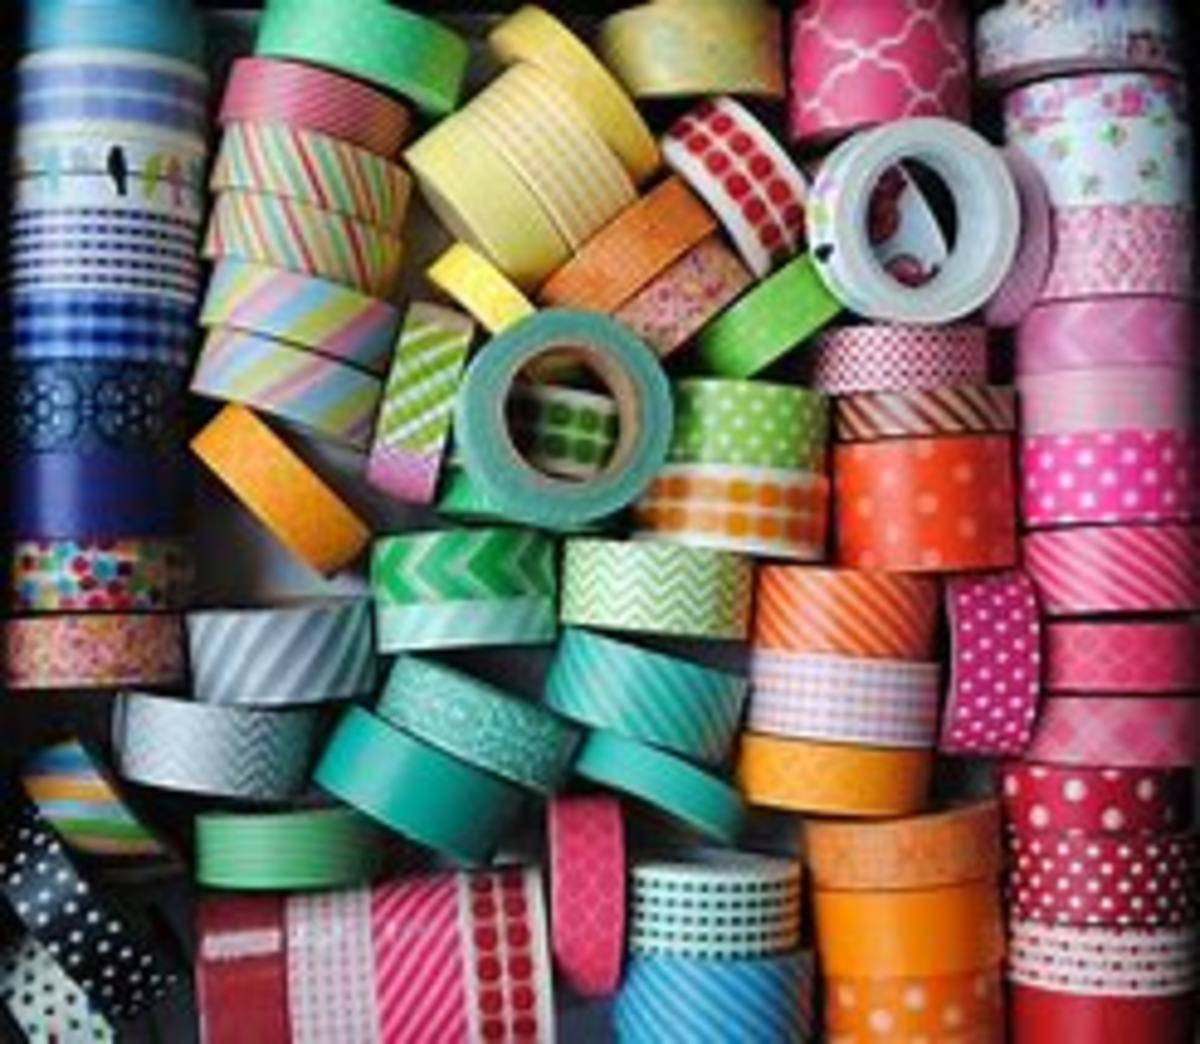 There are so many ways to use this lovely decorative tape